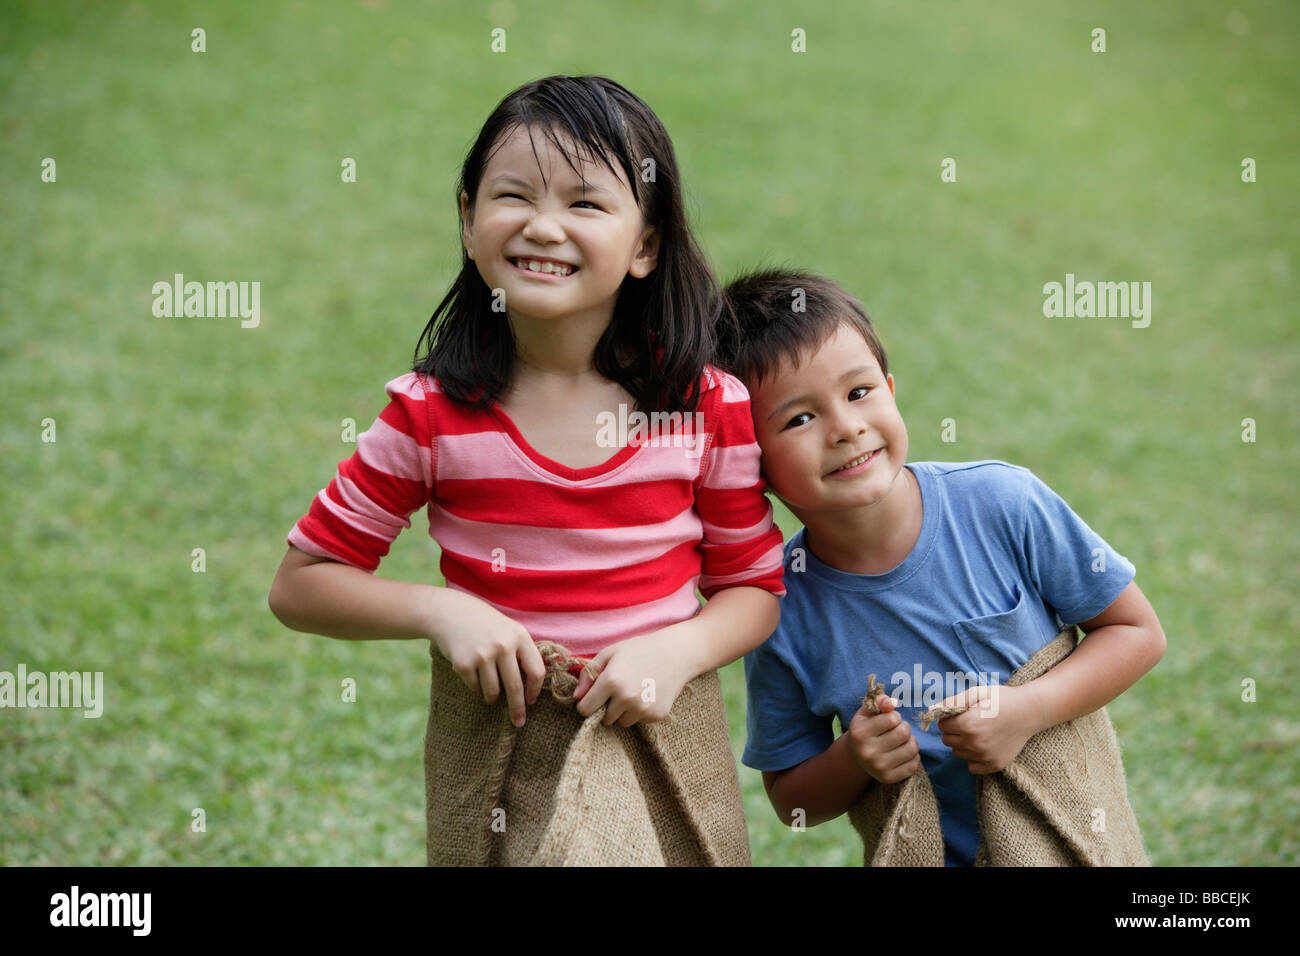 Kids ready for a sack race - Stock Image